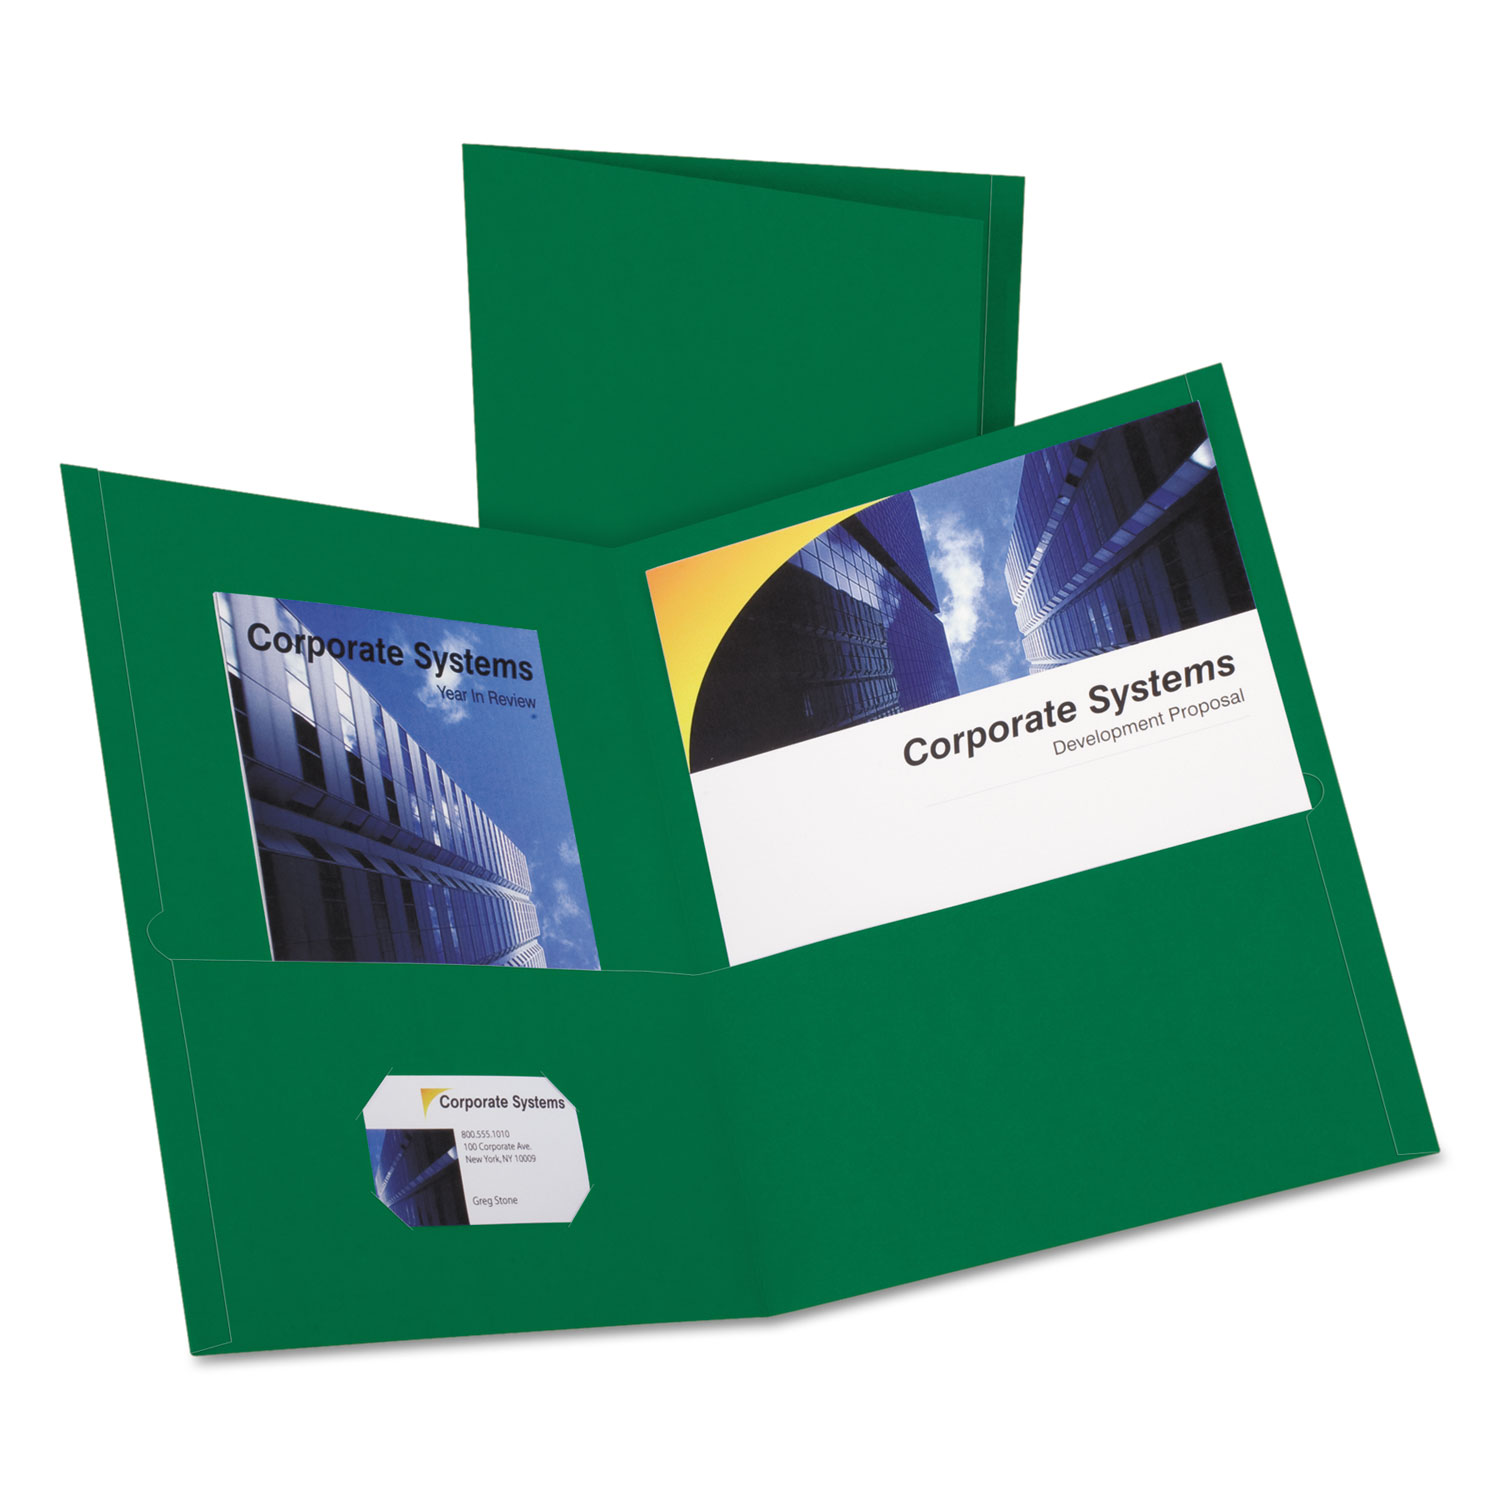 2 Pocket Folders With Business Card Slot | Best Business Cards